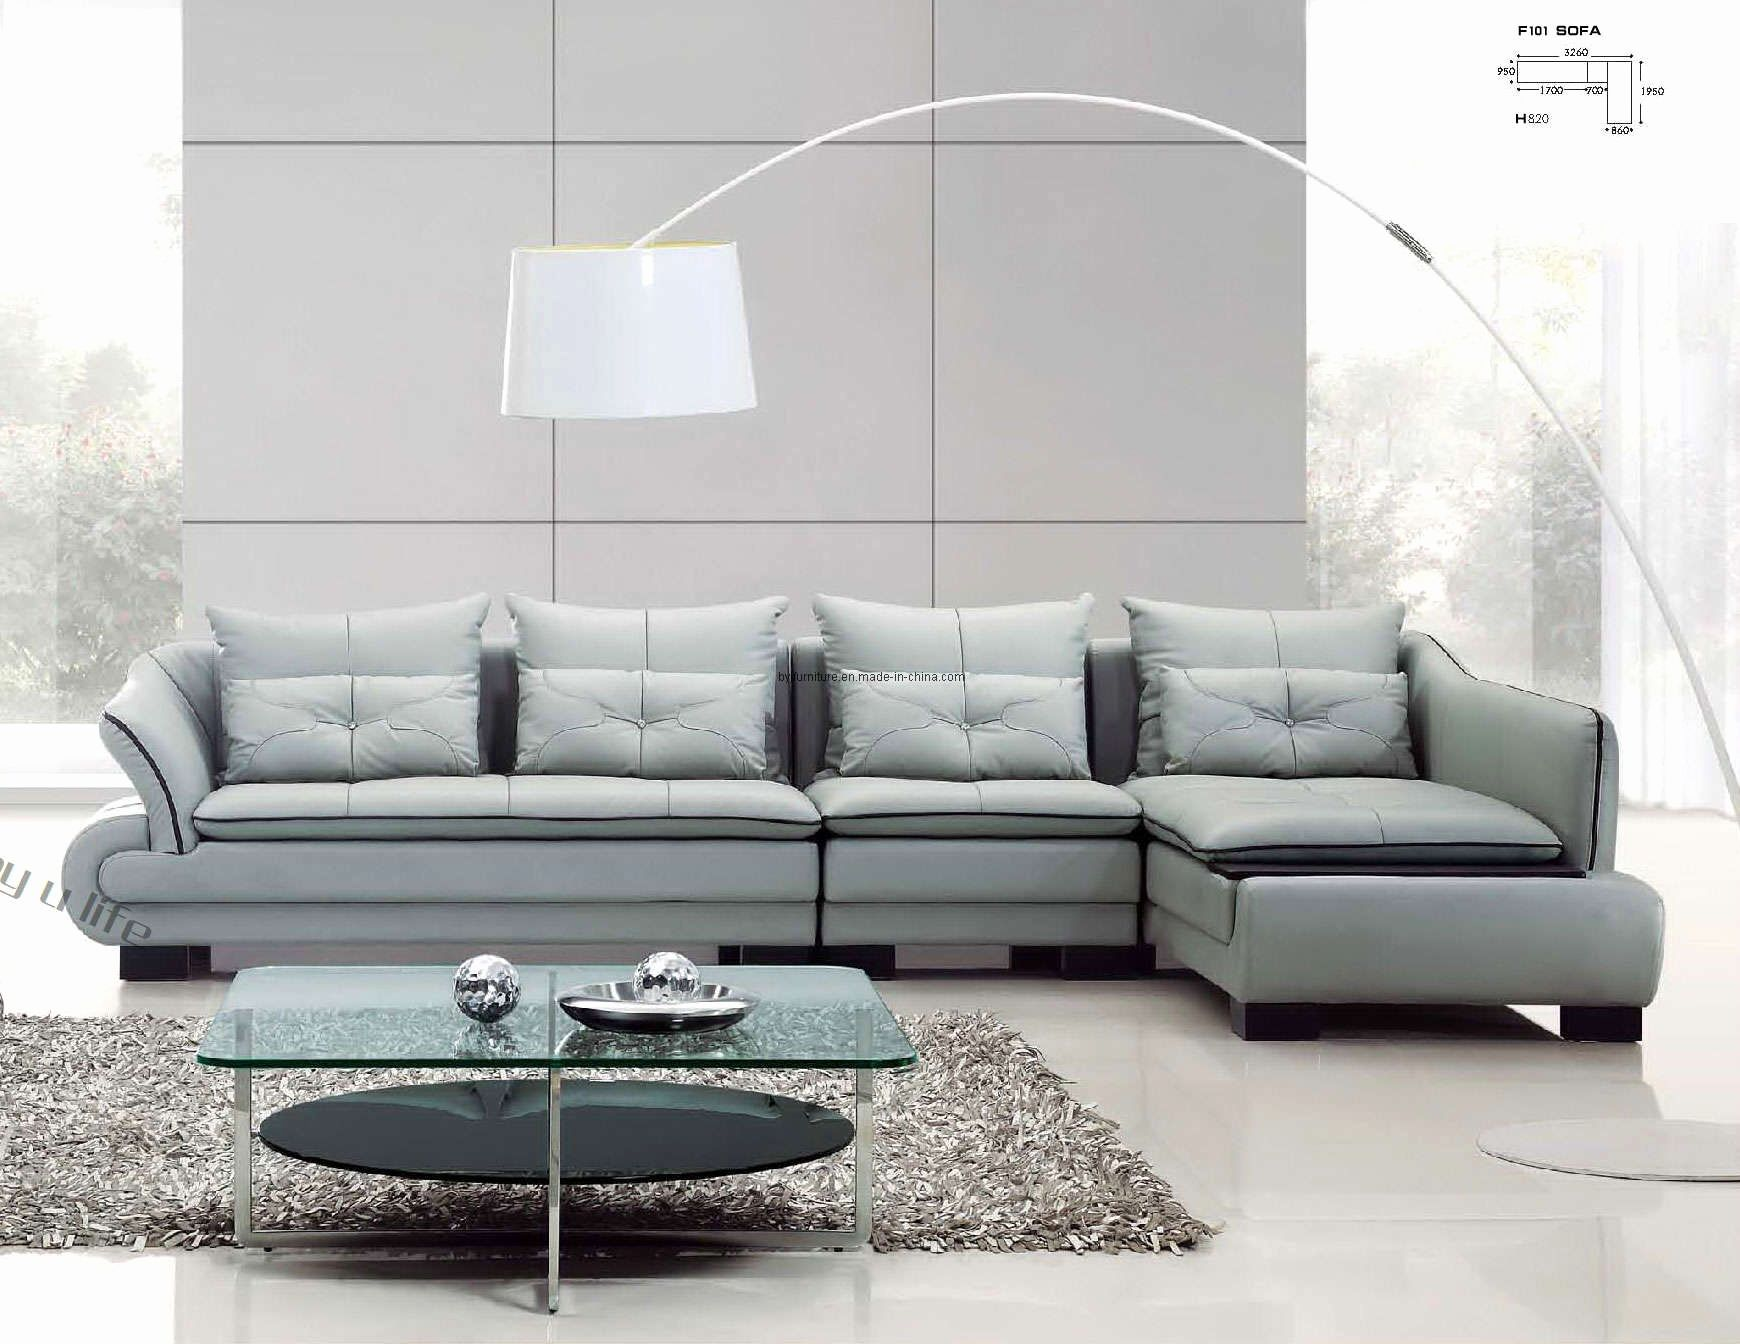 Luxury sofa Designs for Living Room Image Sofa Designs for Living